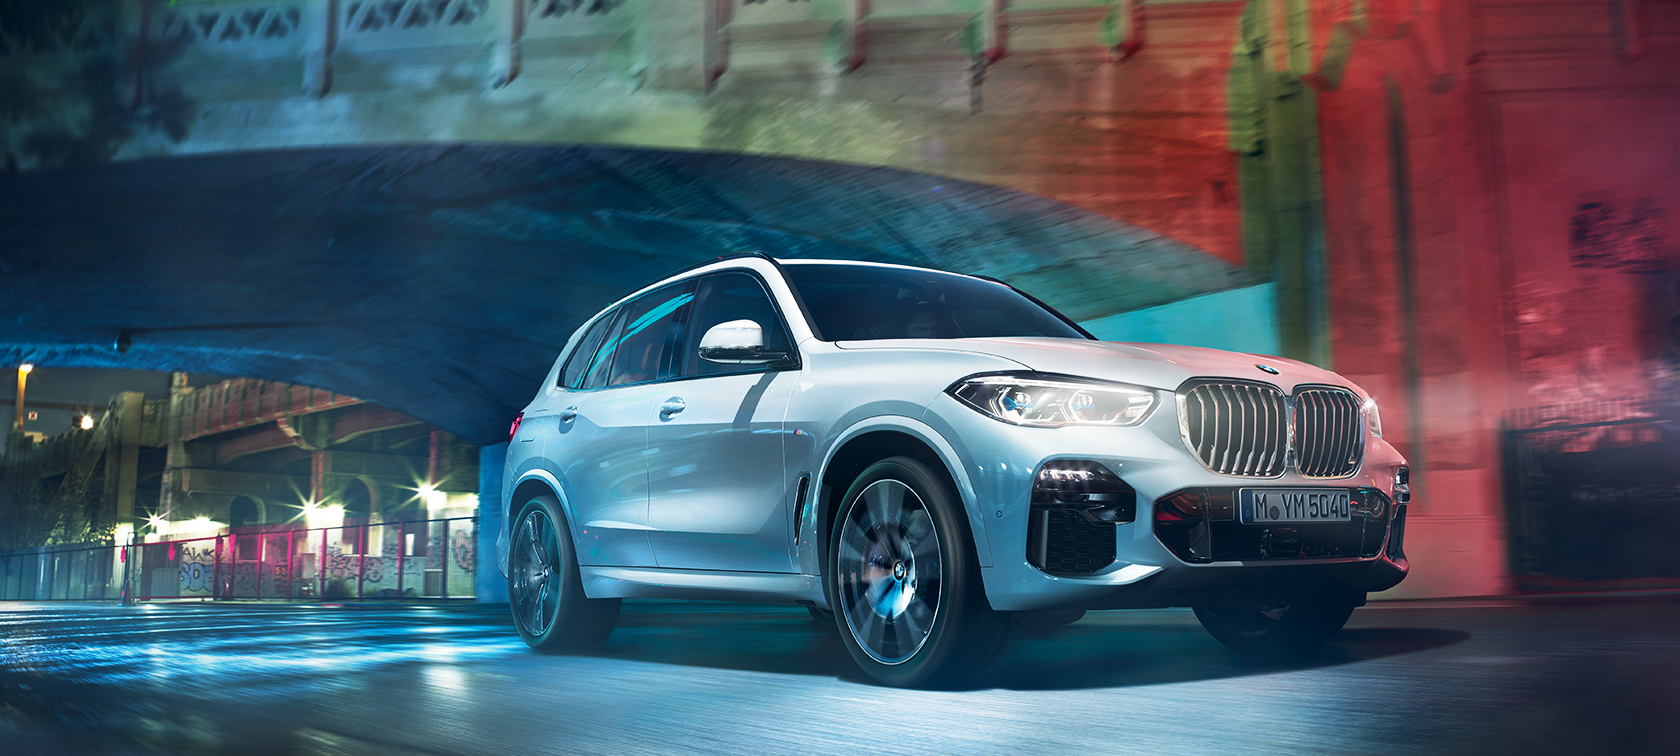 BMW X5 G05 2018 Mineral White metallic three-quarter front view driving at night